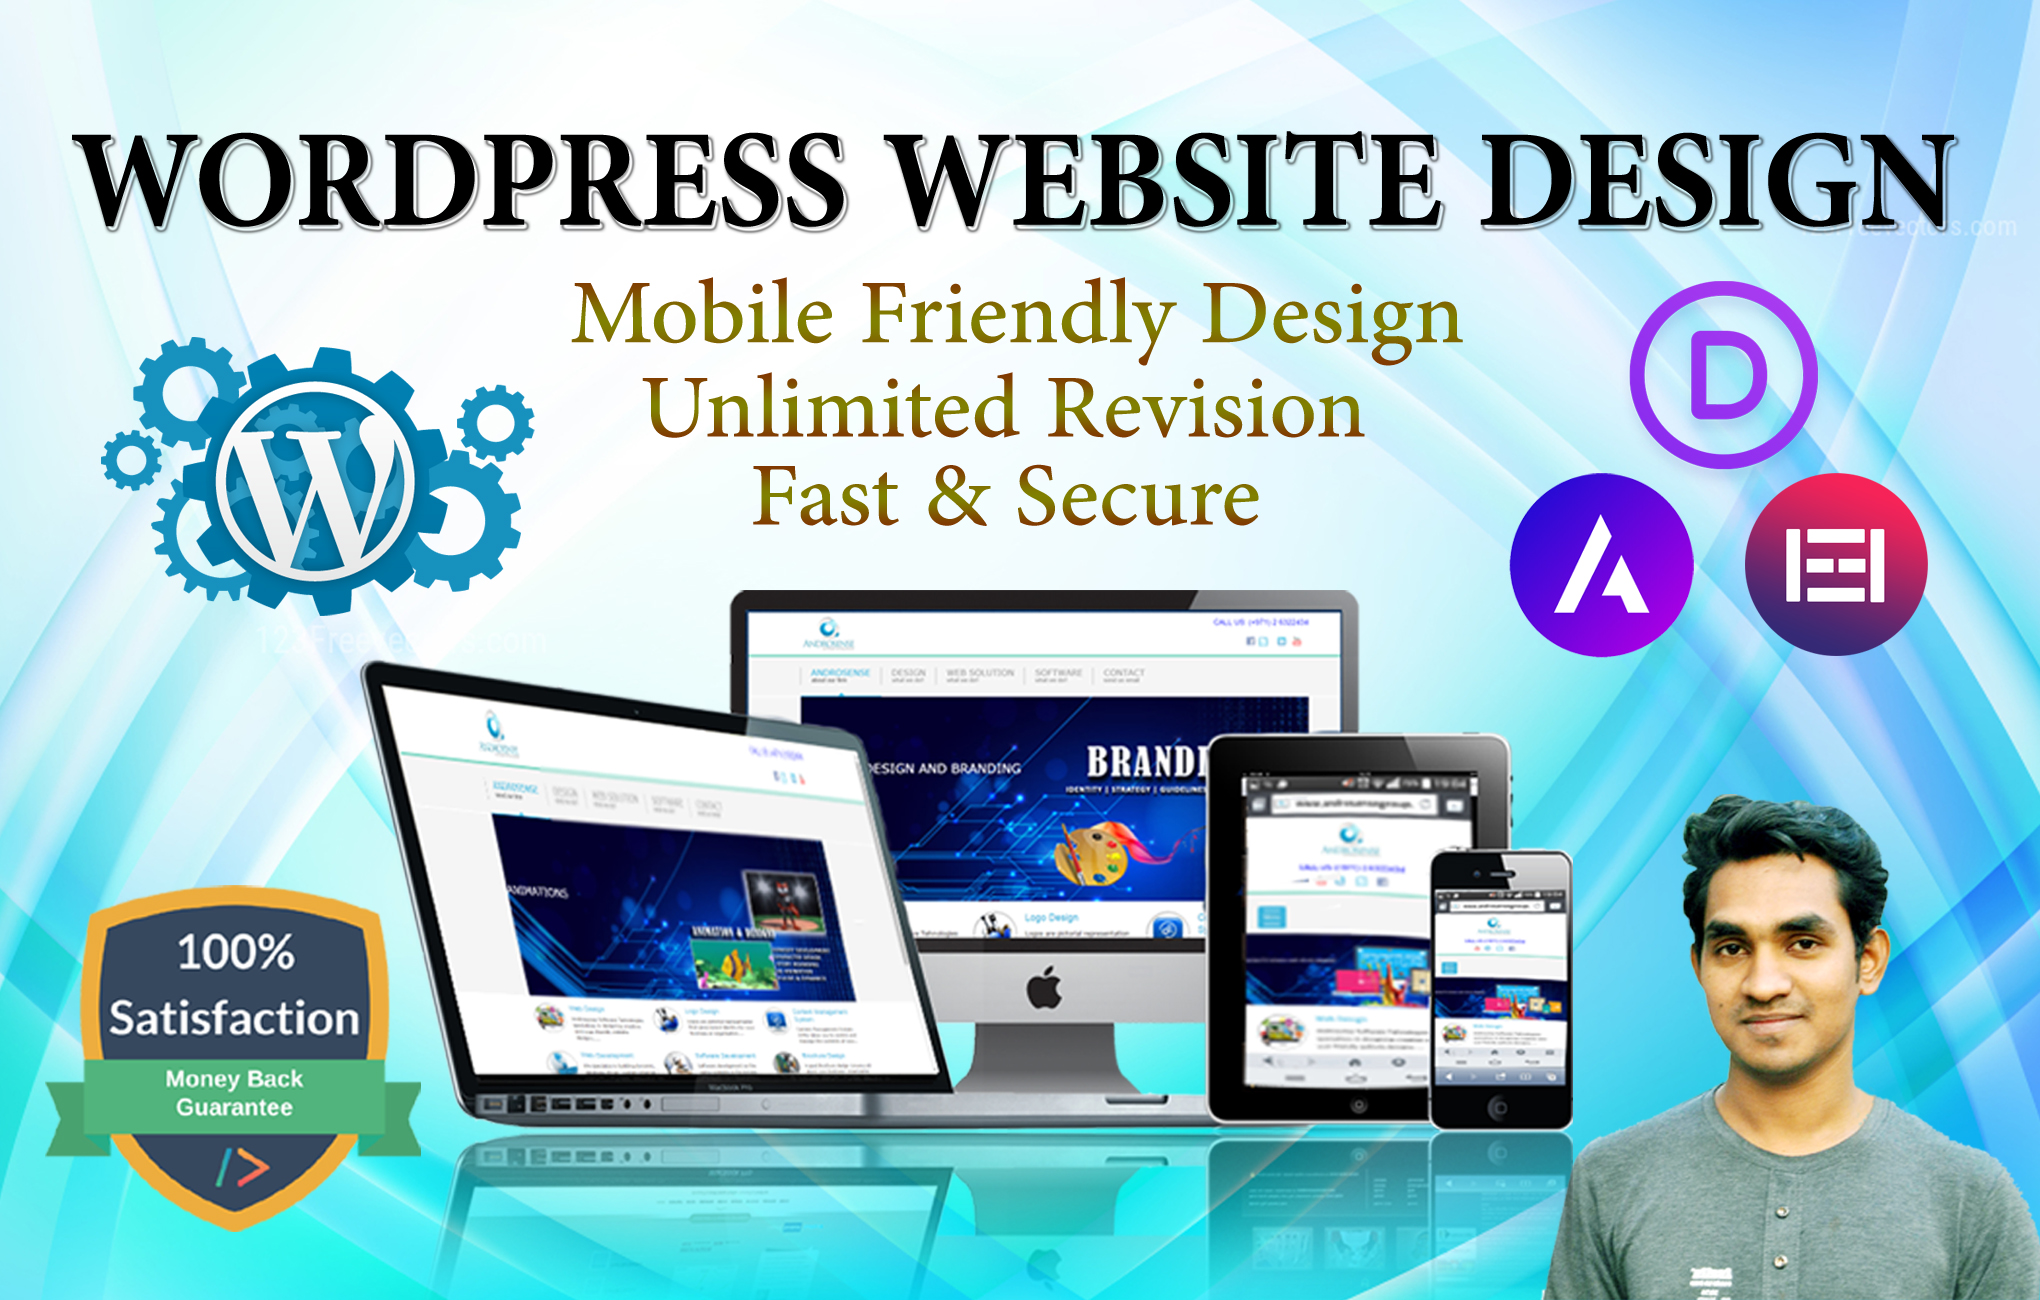 I will build a professional website on wordpress